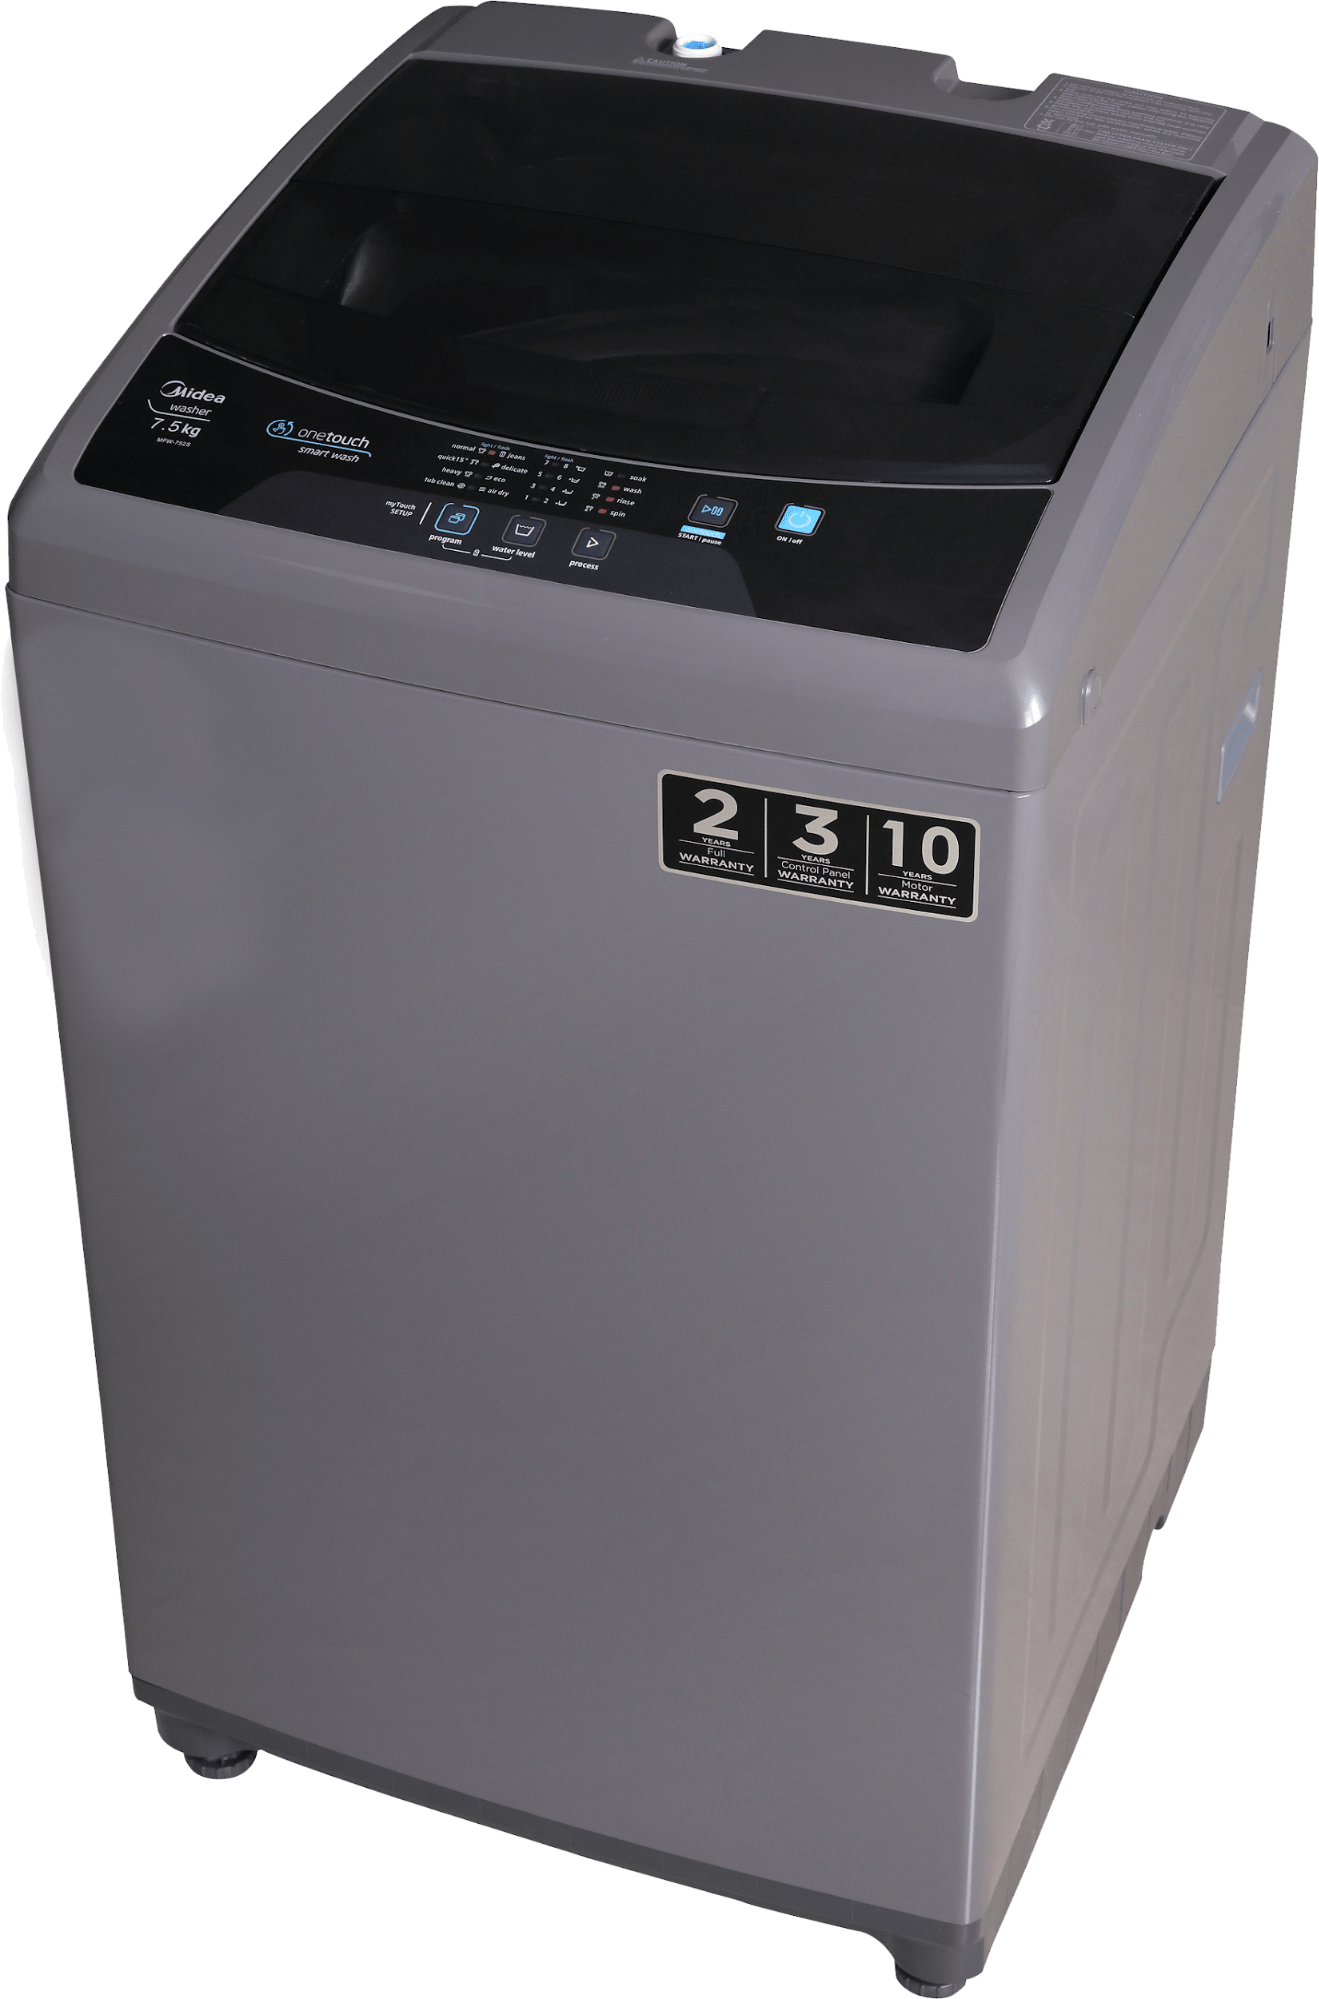 Midea Top Load Washing Machine